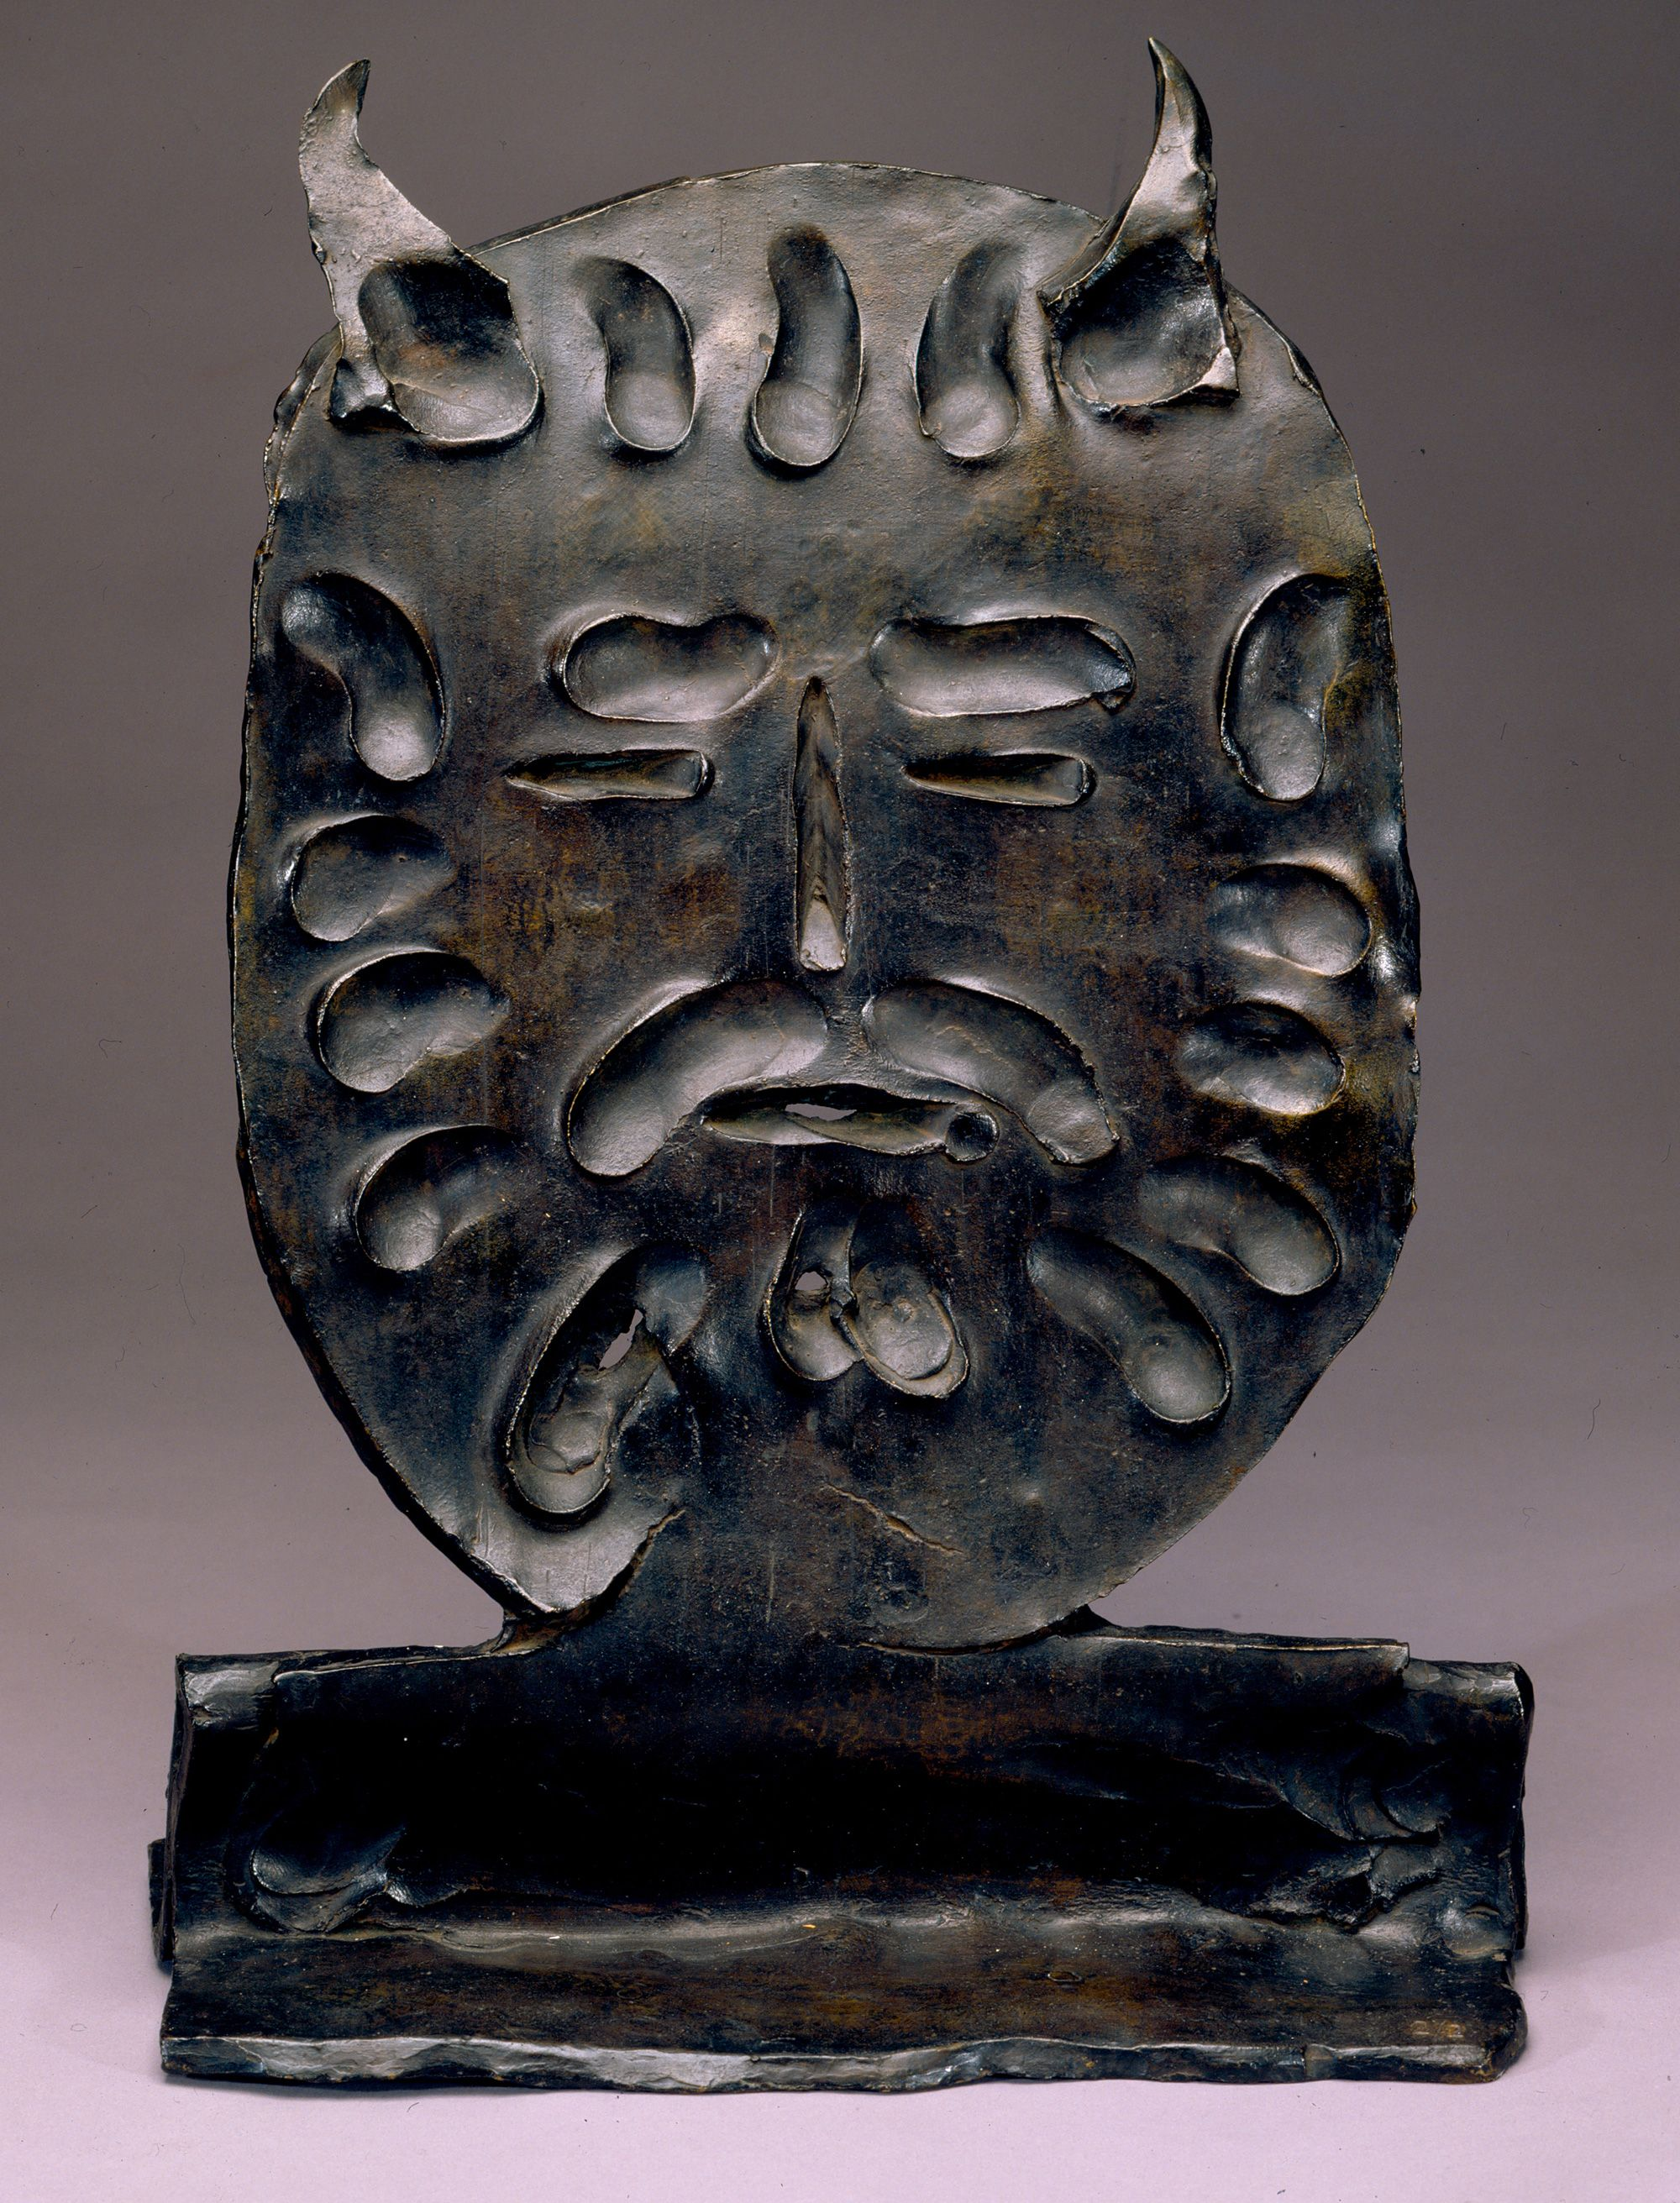 Title:Mask of a Faun Artist: Pablo Picasso Region: Spain